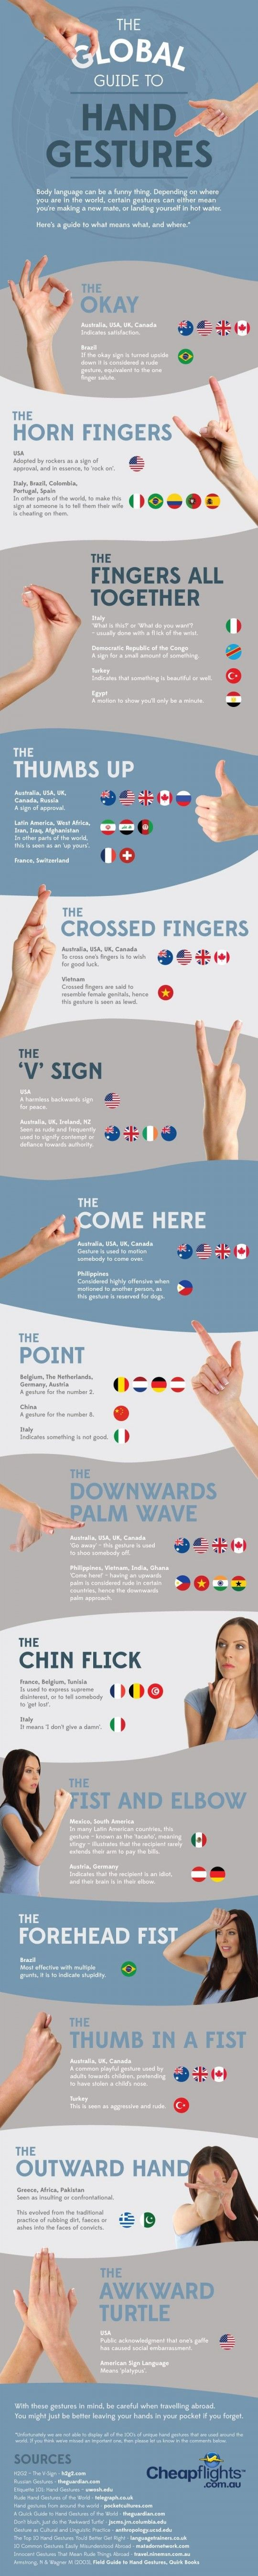 "Infographic: ""The Global Guide to Hand Gestures"" 